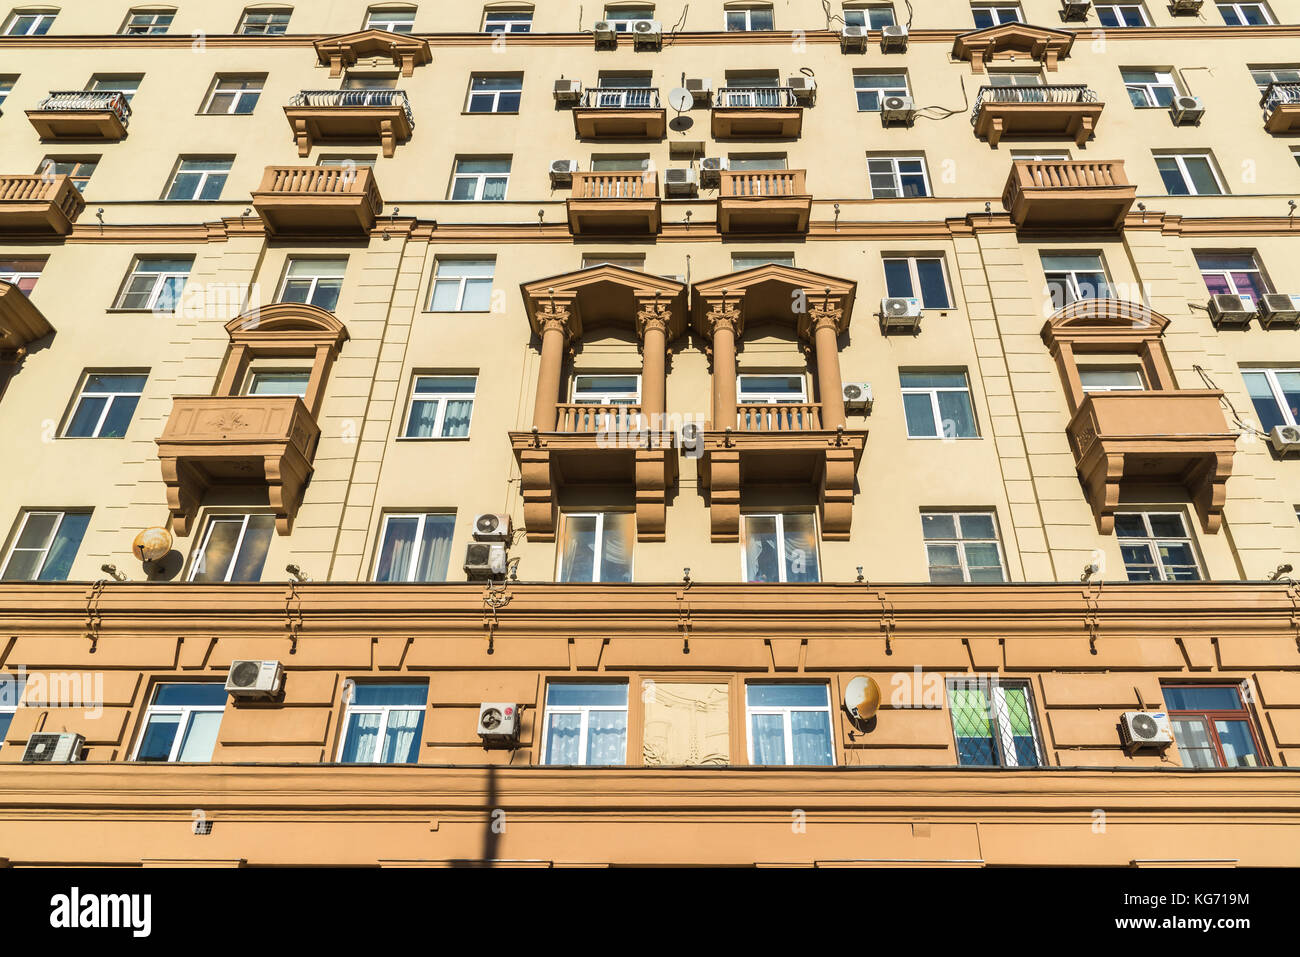 City childrens polyclinic. Moscow and its medical institutions